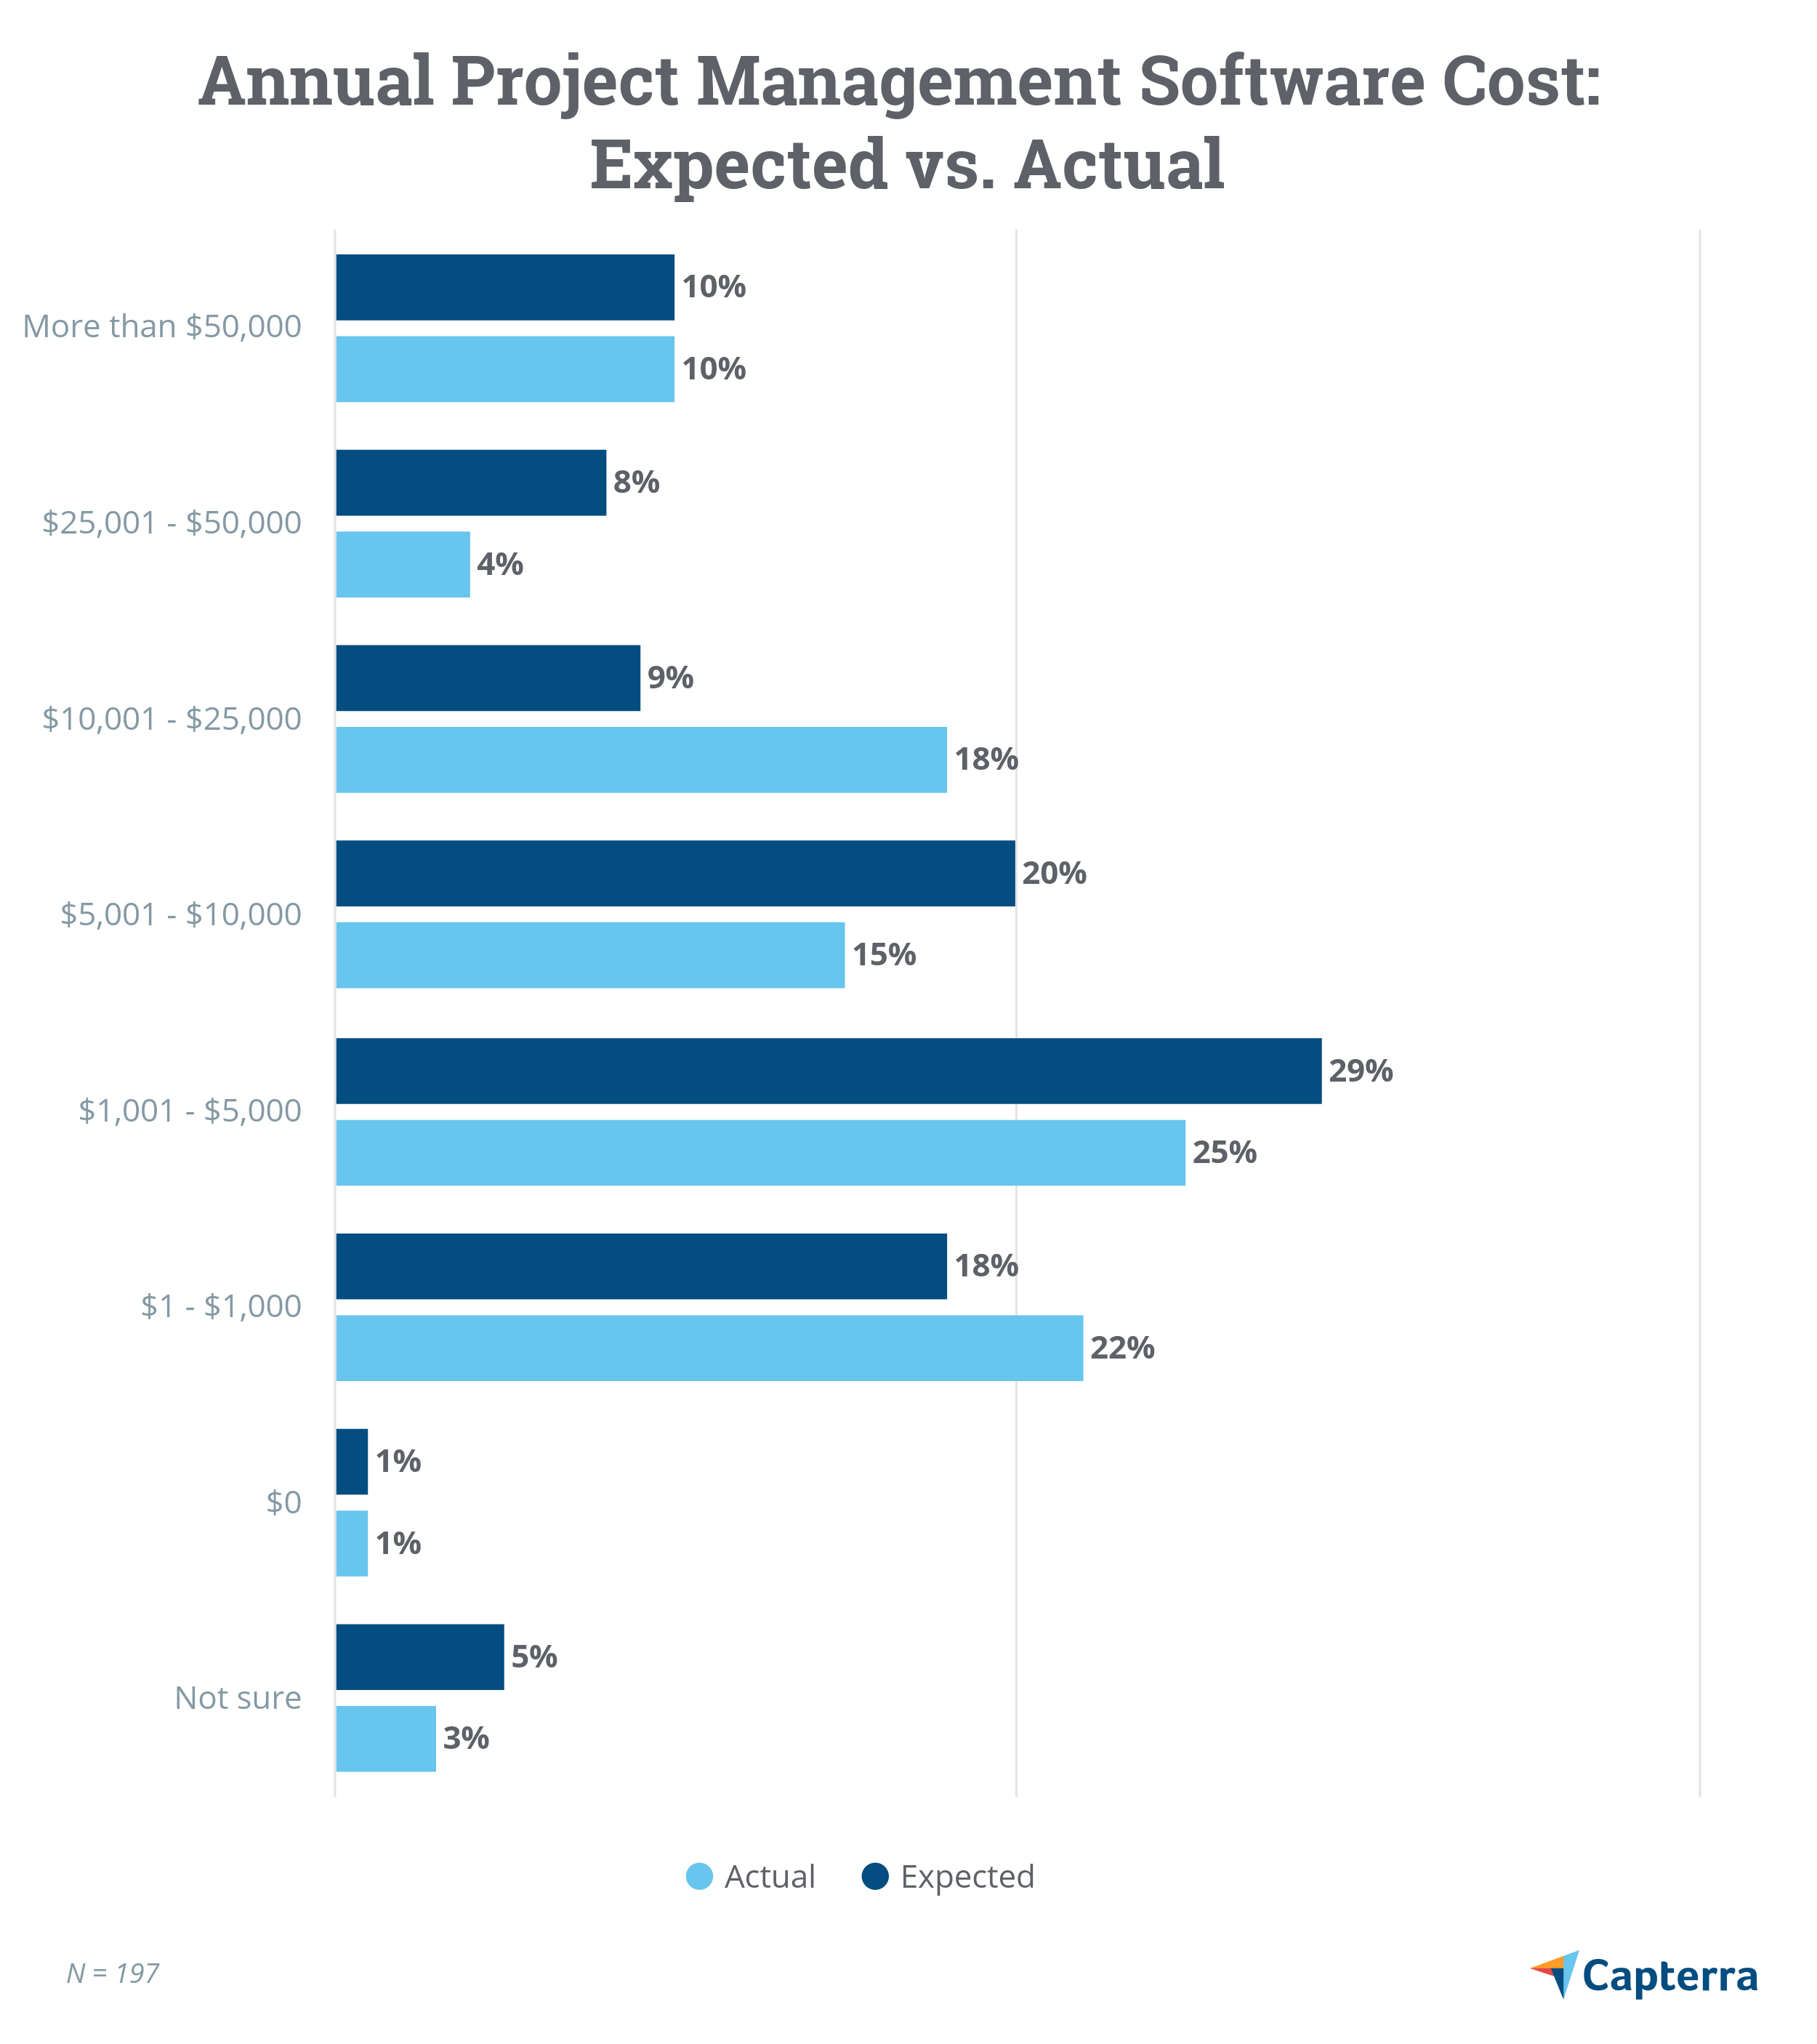 Annual project management software cost: expected vs. actual